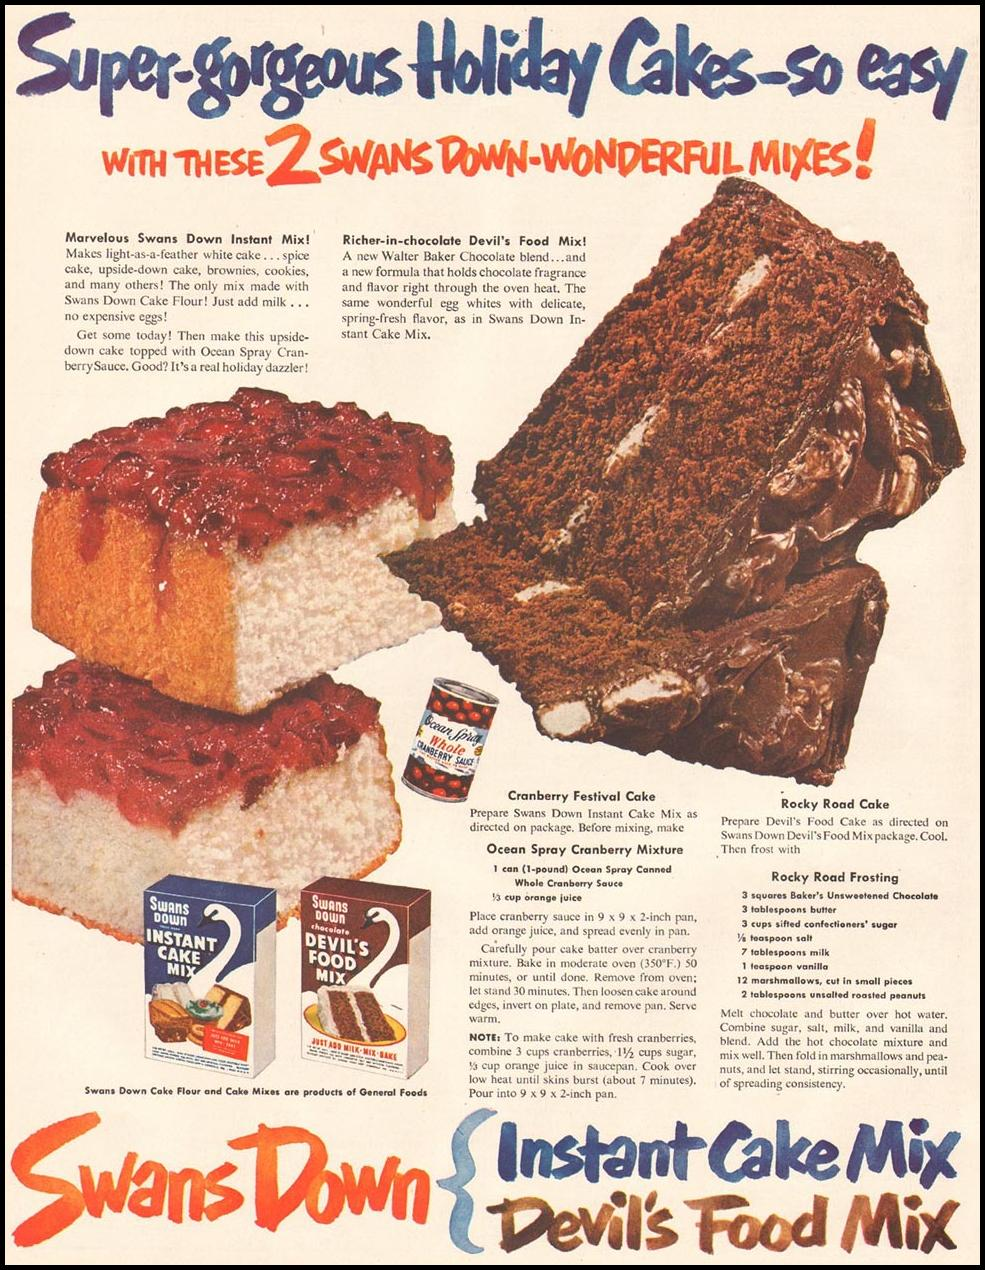 SAWNS DOWN CAKE MIXES LADIES' HOME JOURNAL 11/01/1950 p. 76